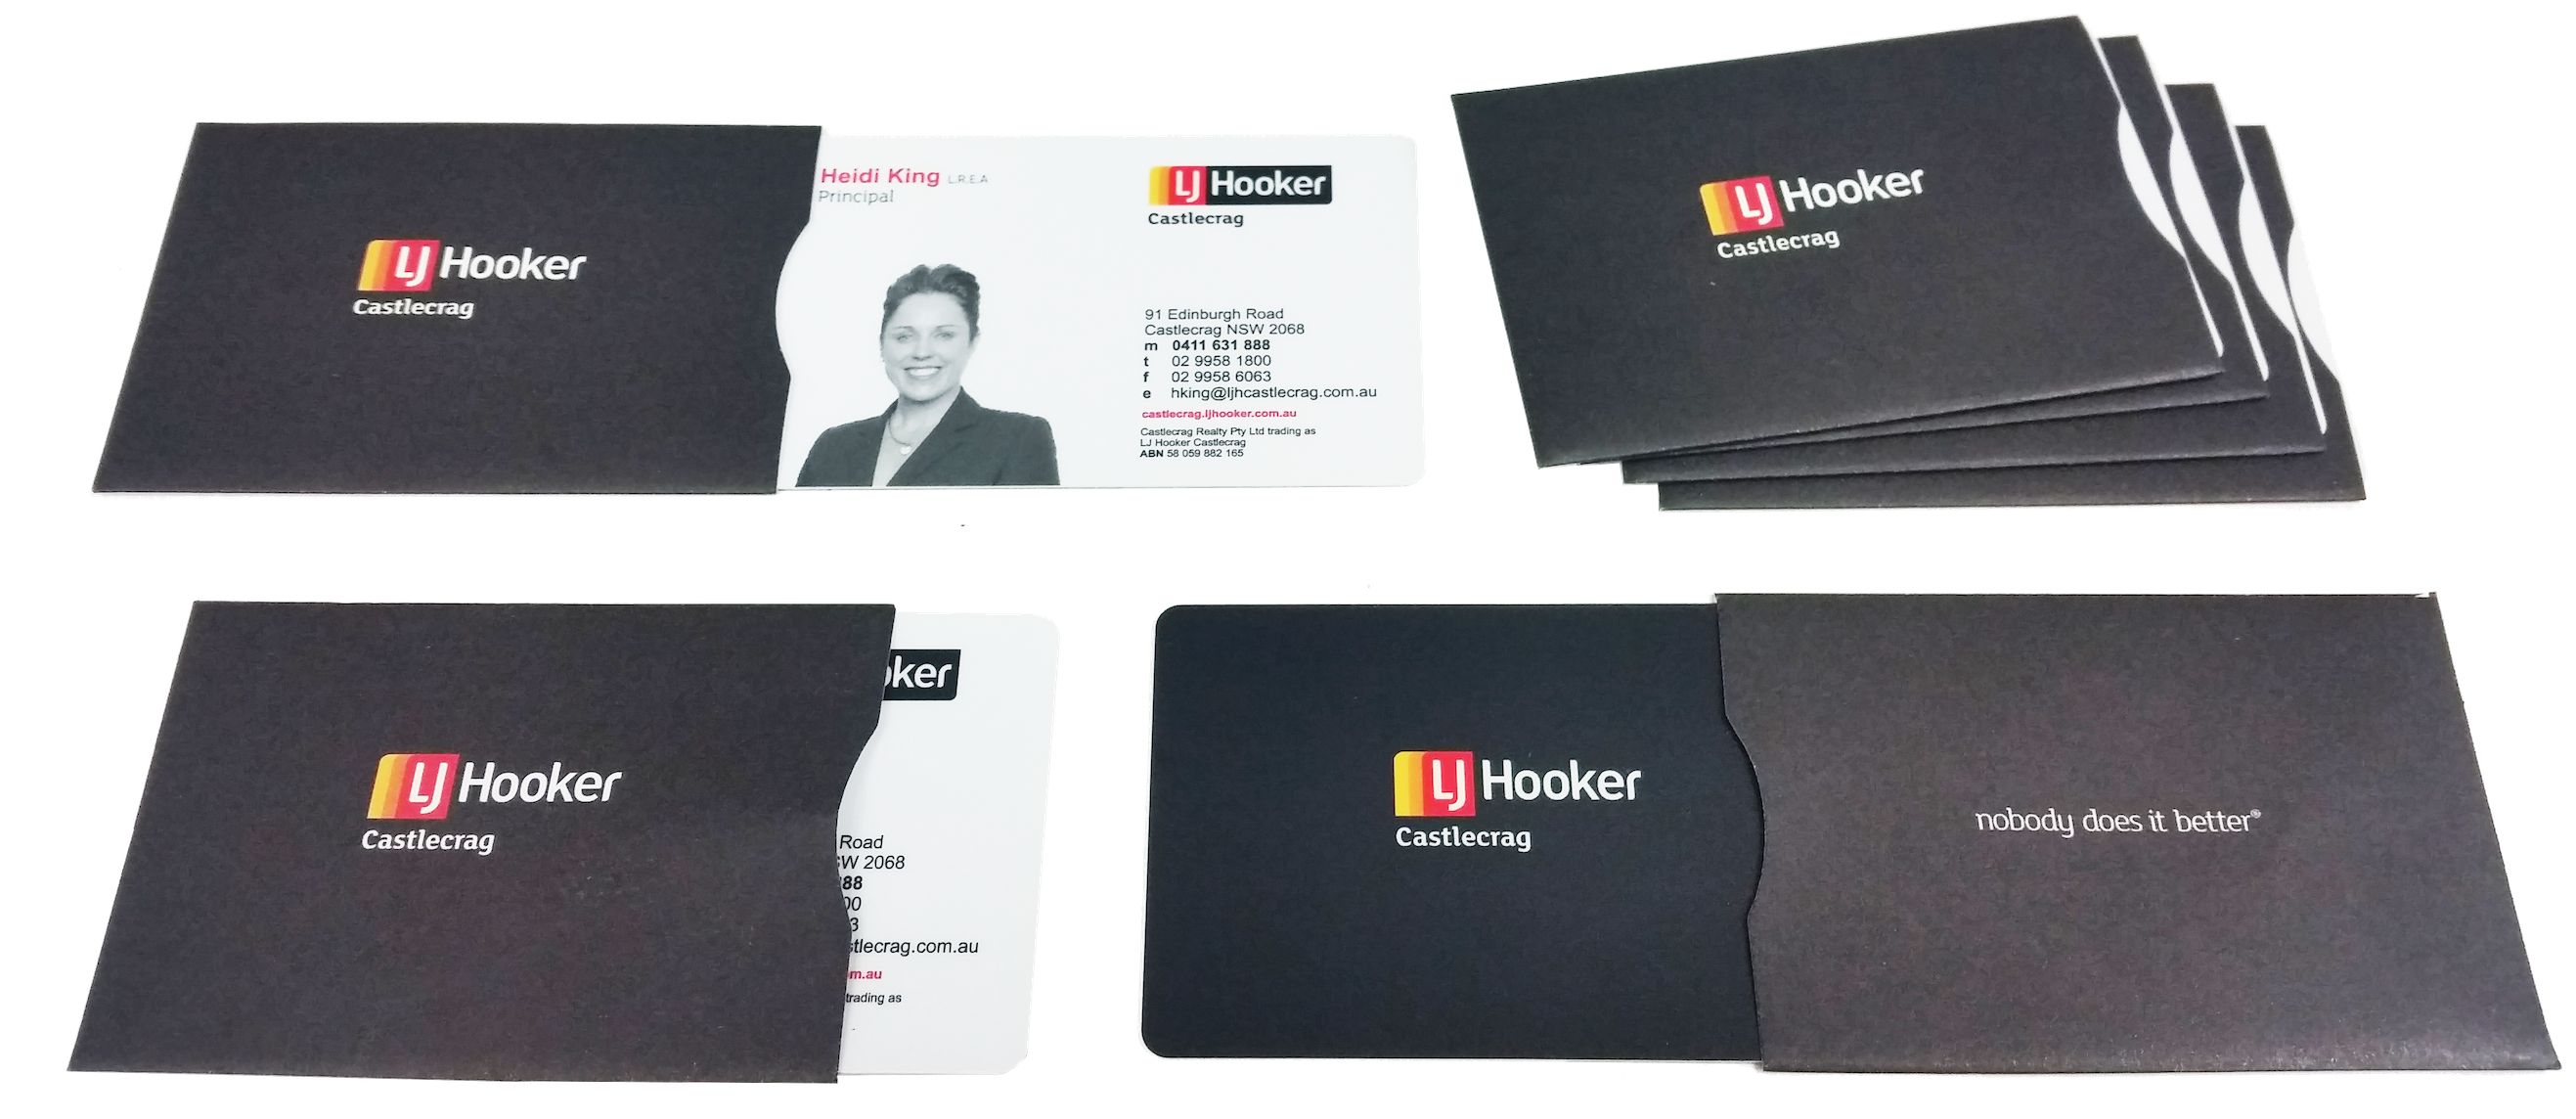 Business card printing loyalty print loyalty print to discuss your business card printing needs or for a printing quote call us on 1300 703 403 or request a quote today colourmoves